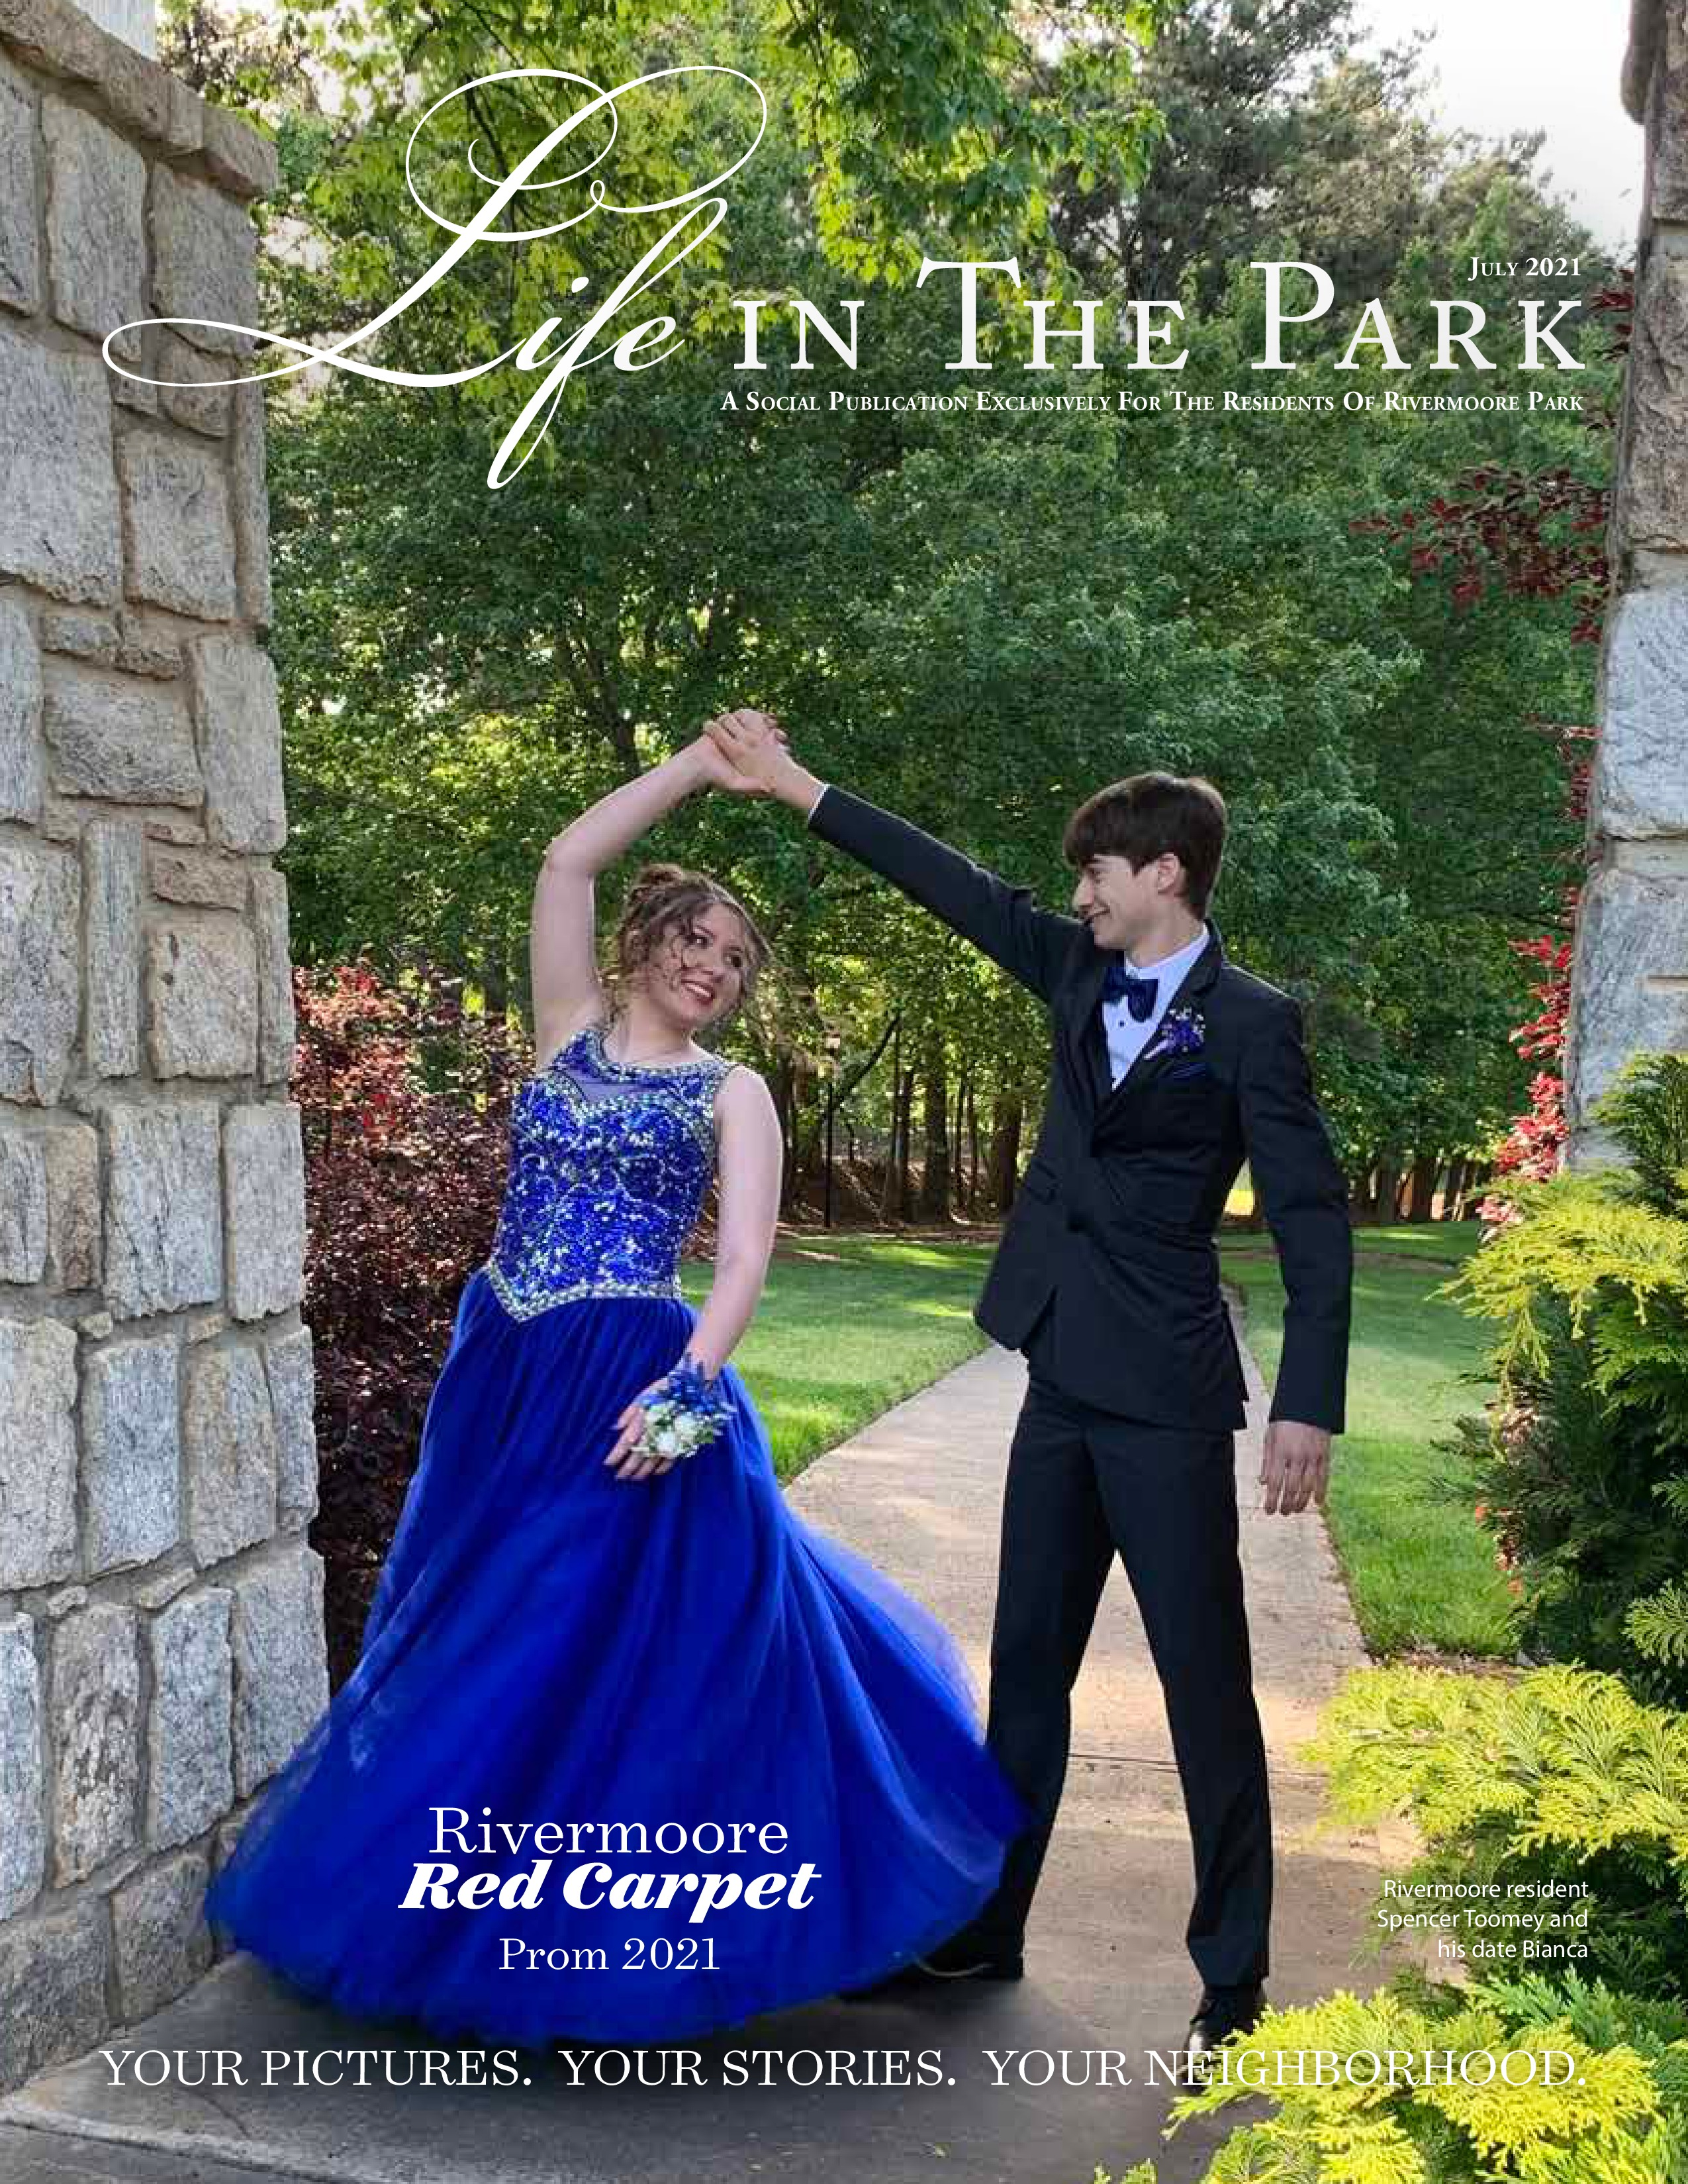 Life in the Park 2021-07-01